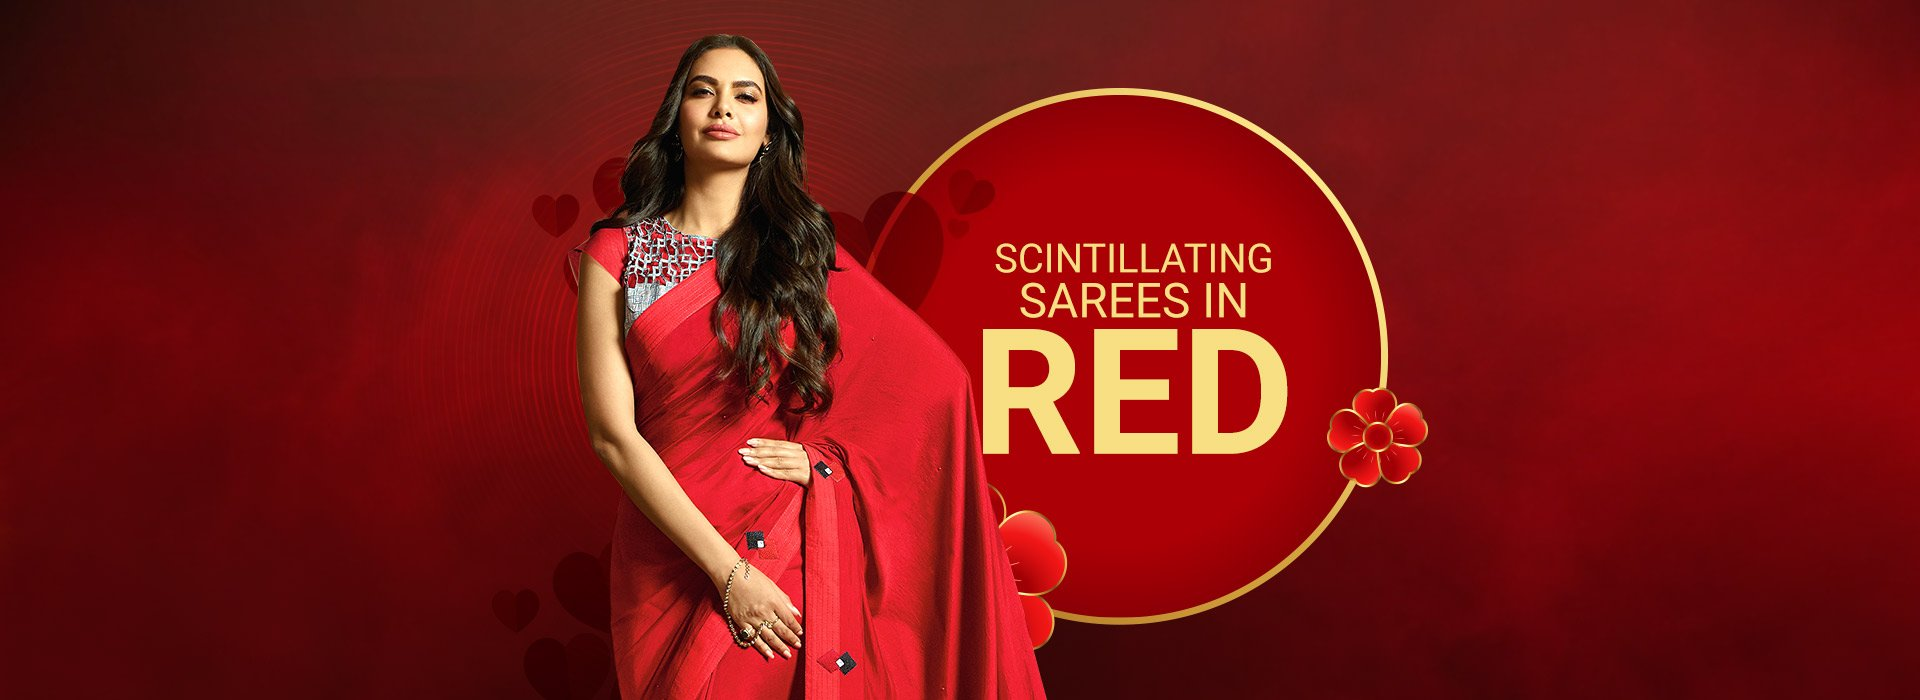 Scintillating Sarees In Red